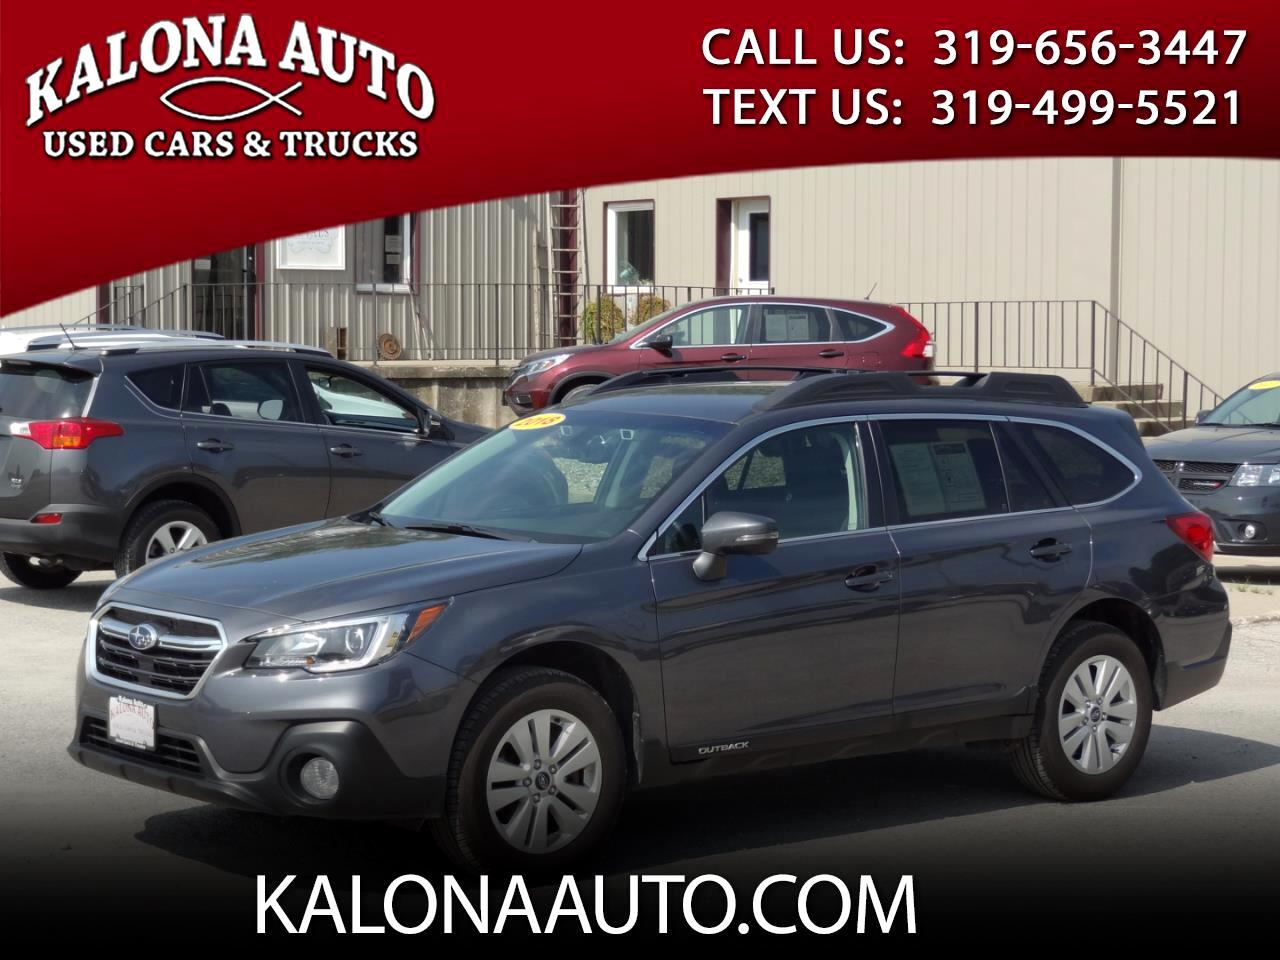 Used 2018 Subaru Outback 2 5i Premium for Sale in Kalona IA 52247